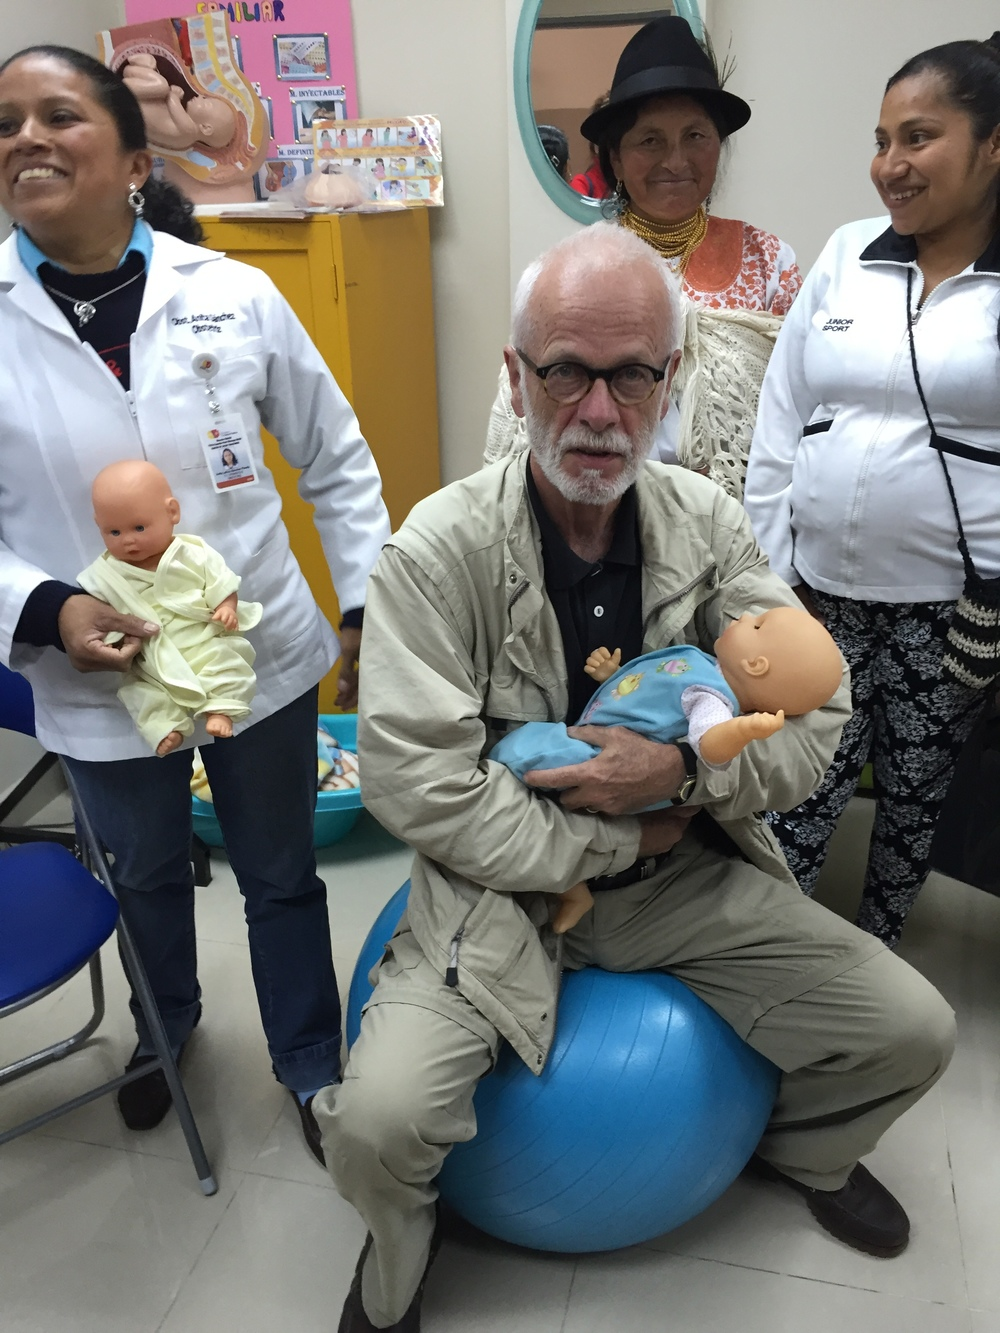 Visiting a fertility clinic in northern Ecuador with CARE, November 2015